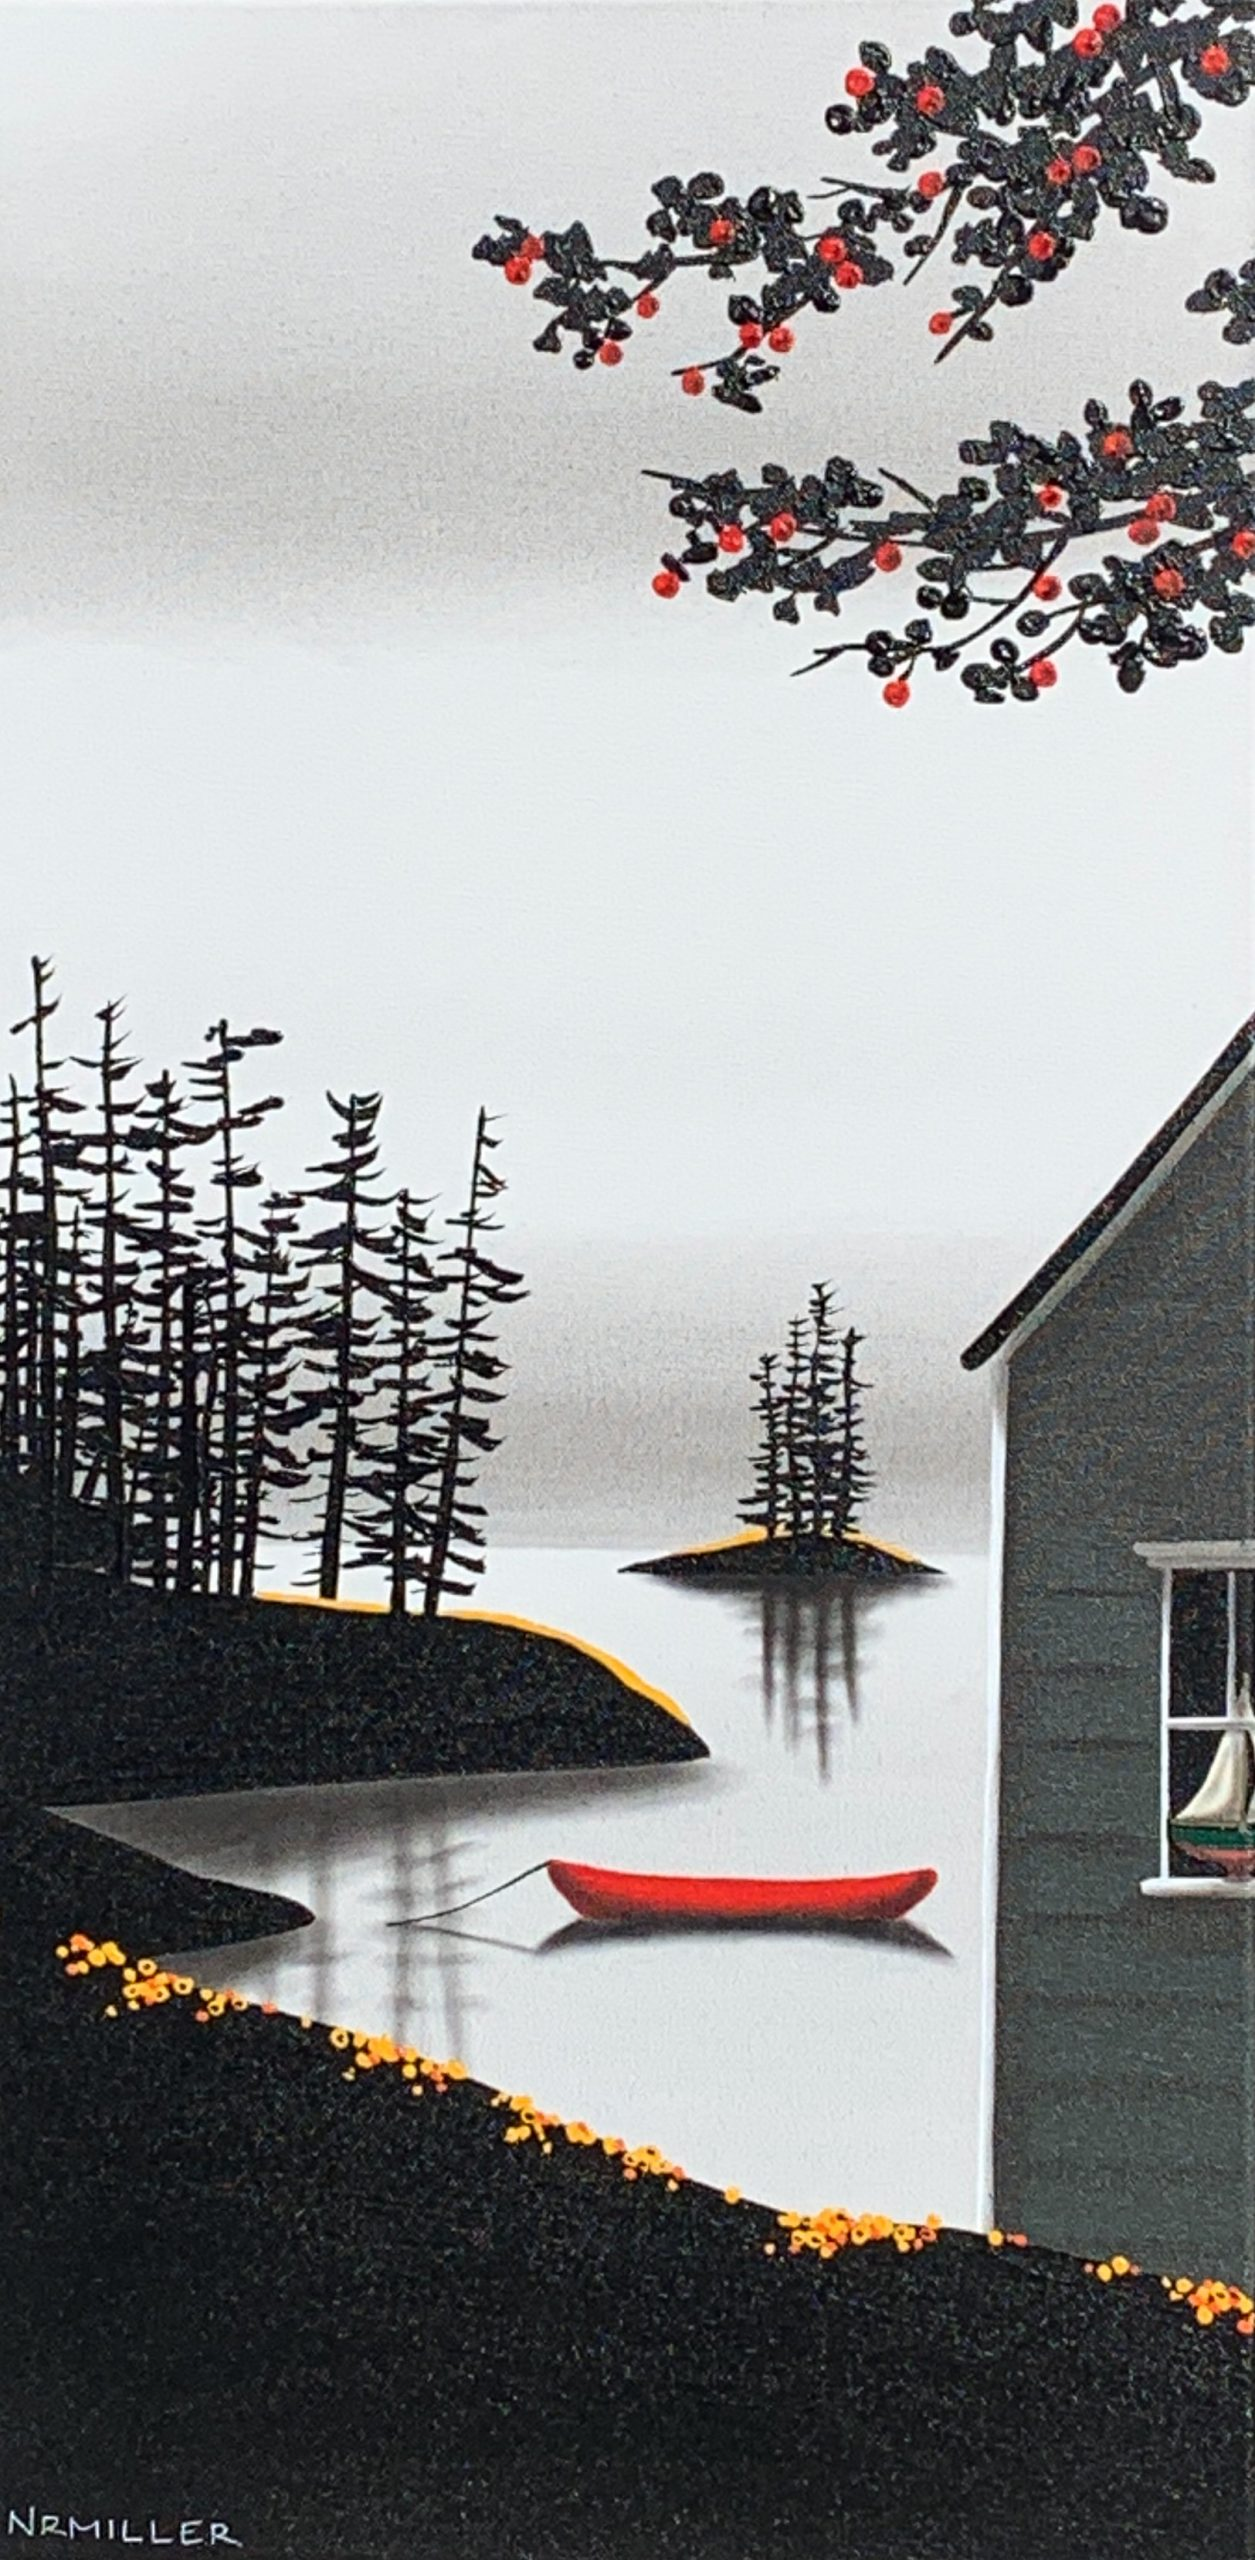 After All, mixed media landscape by Natasha Miller | Effusion Art Gallery + Cast Glass Studio, Invermere BC